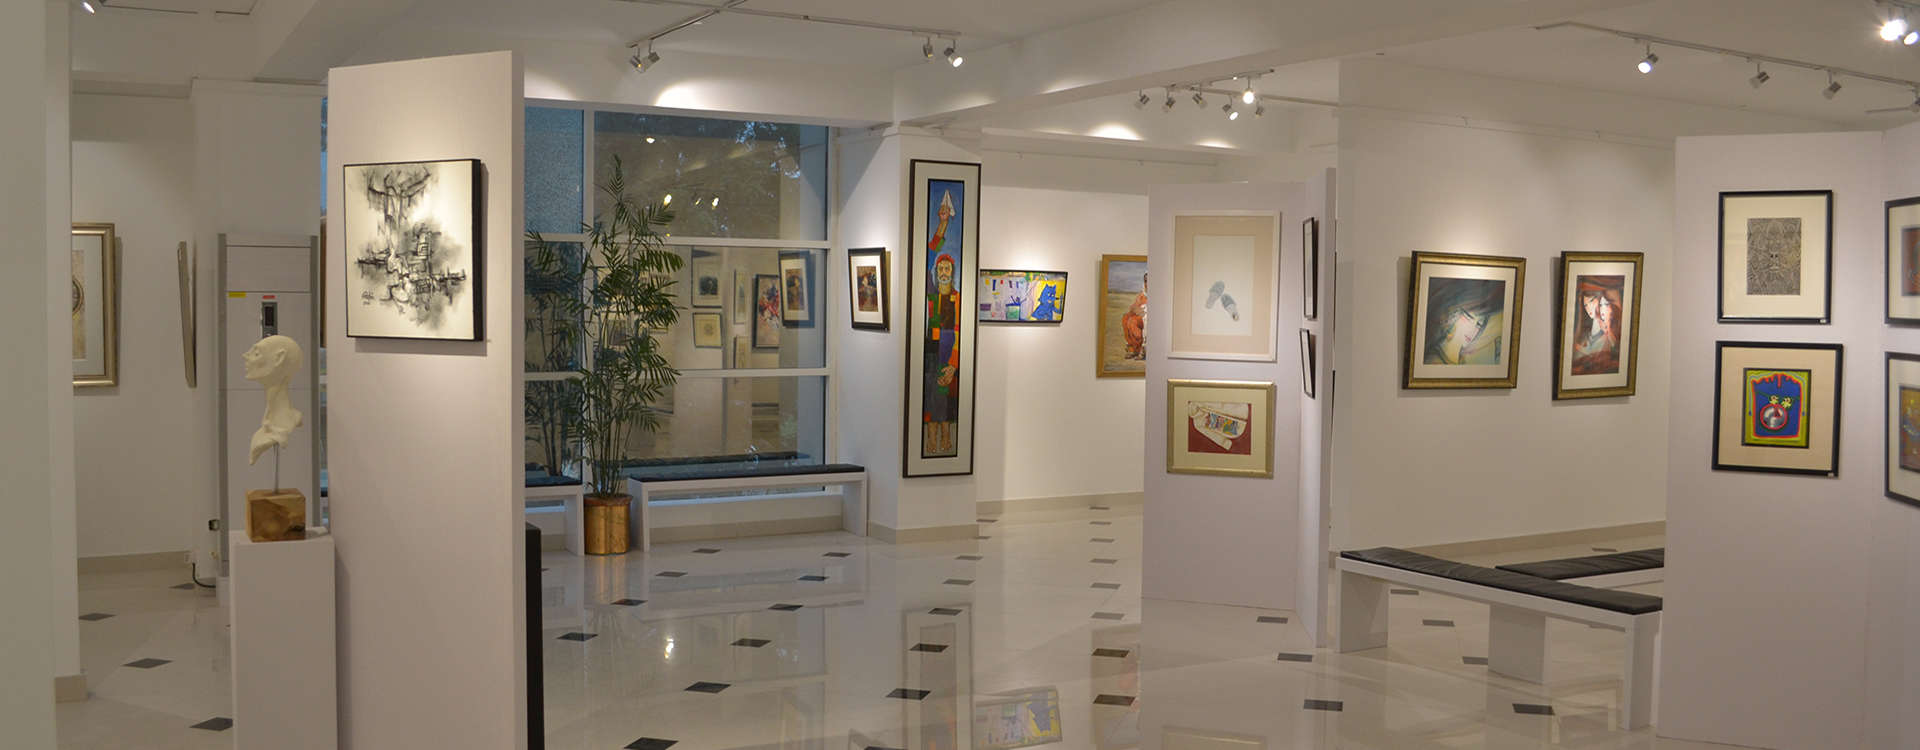 Pakistani Art Gallery 4